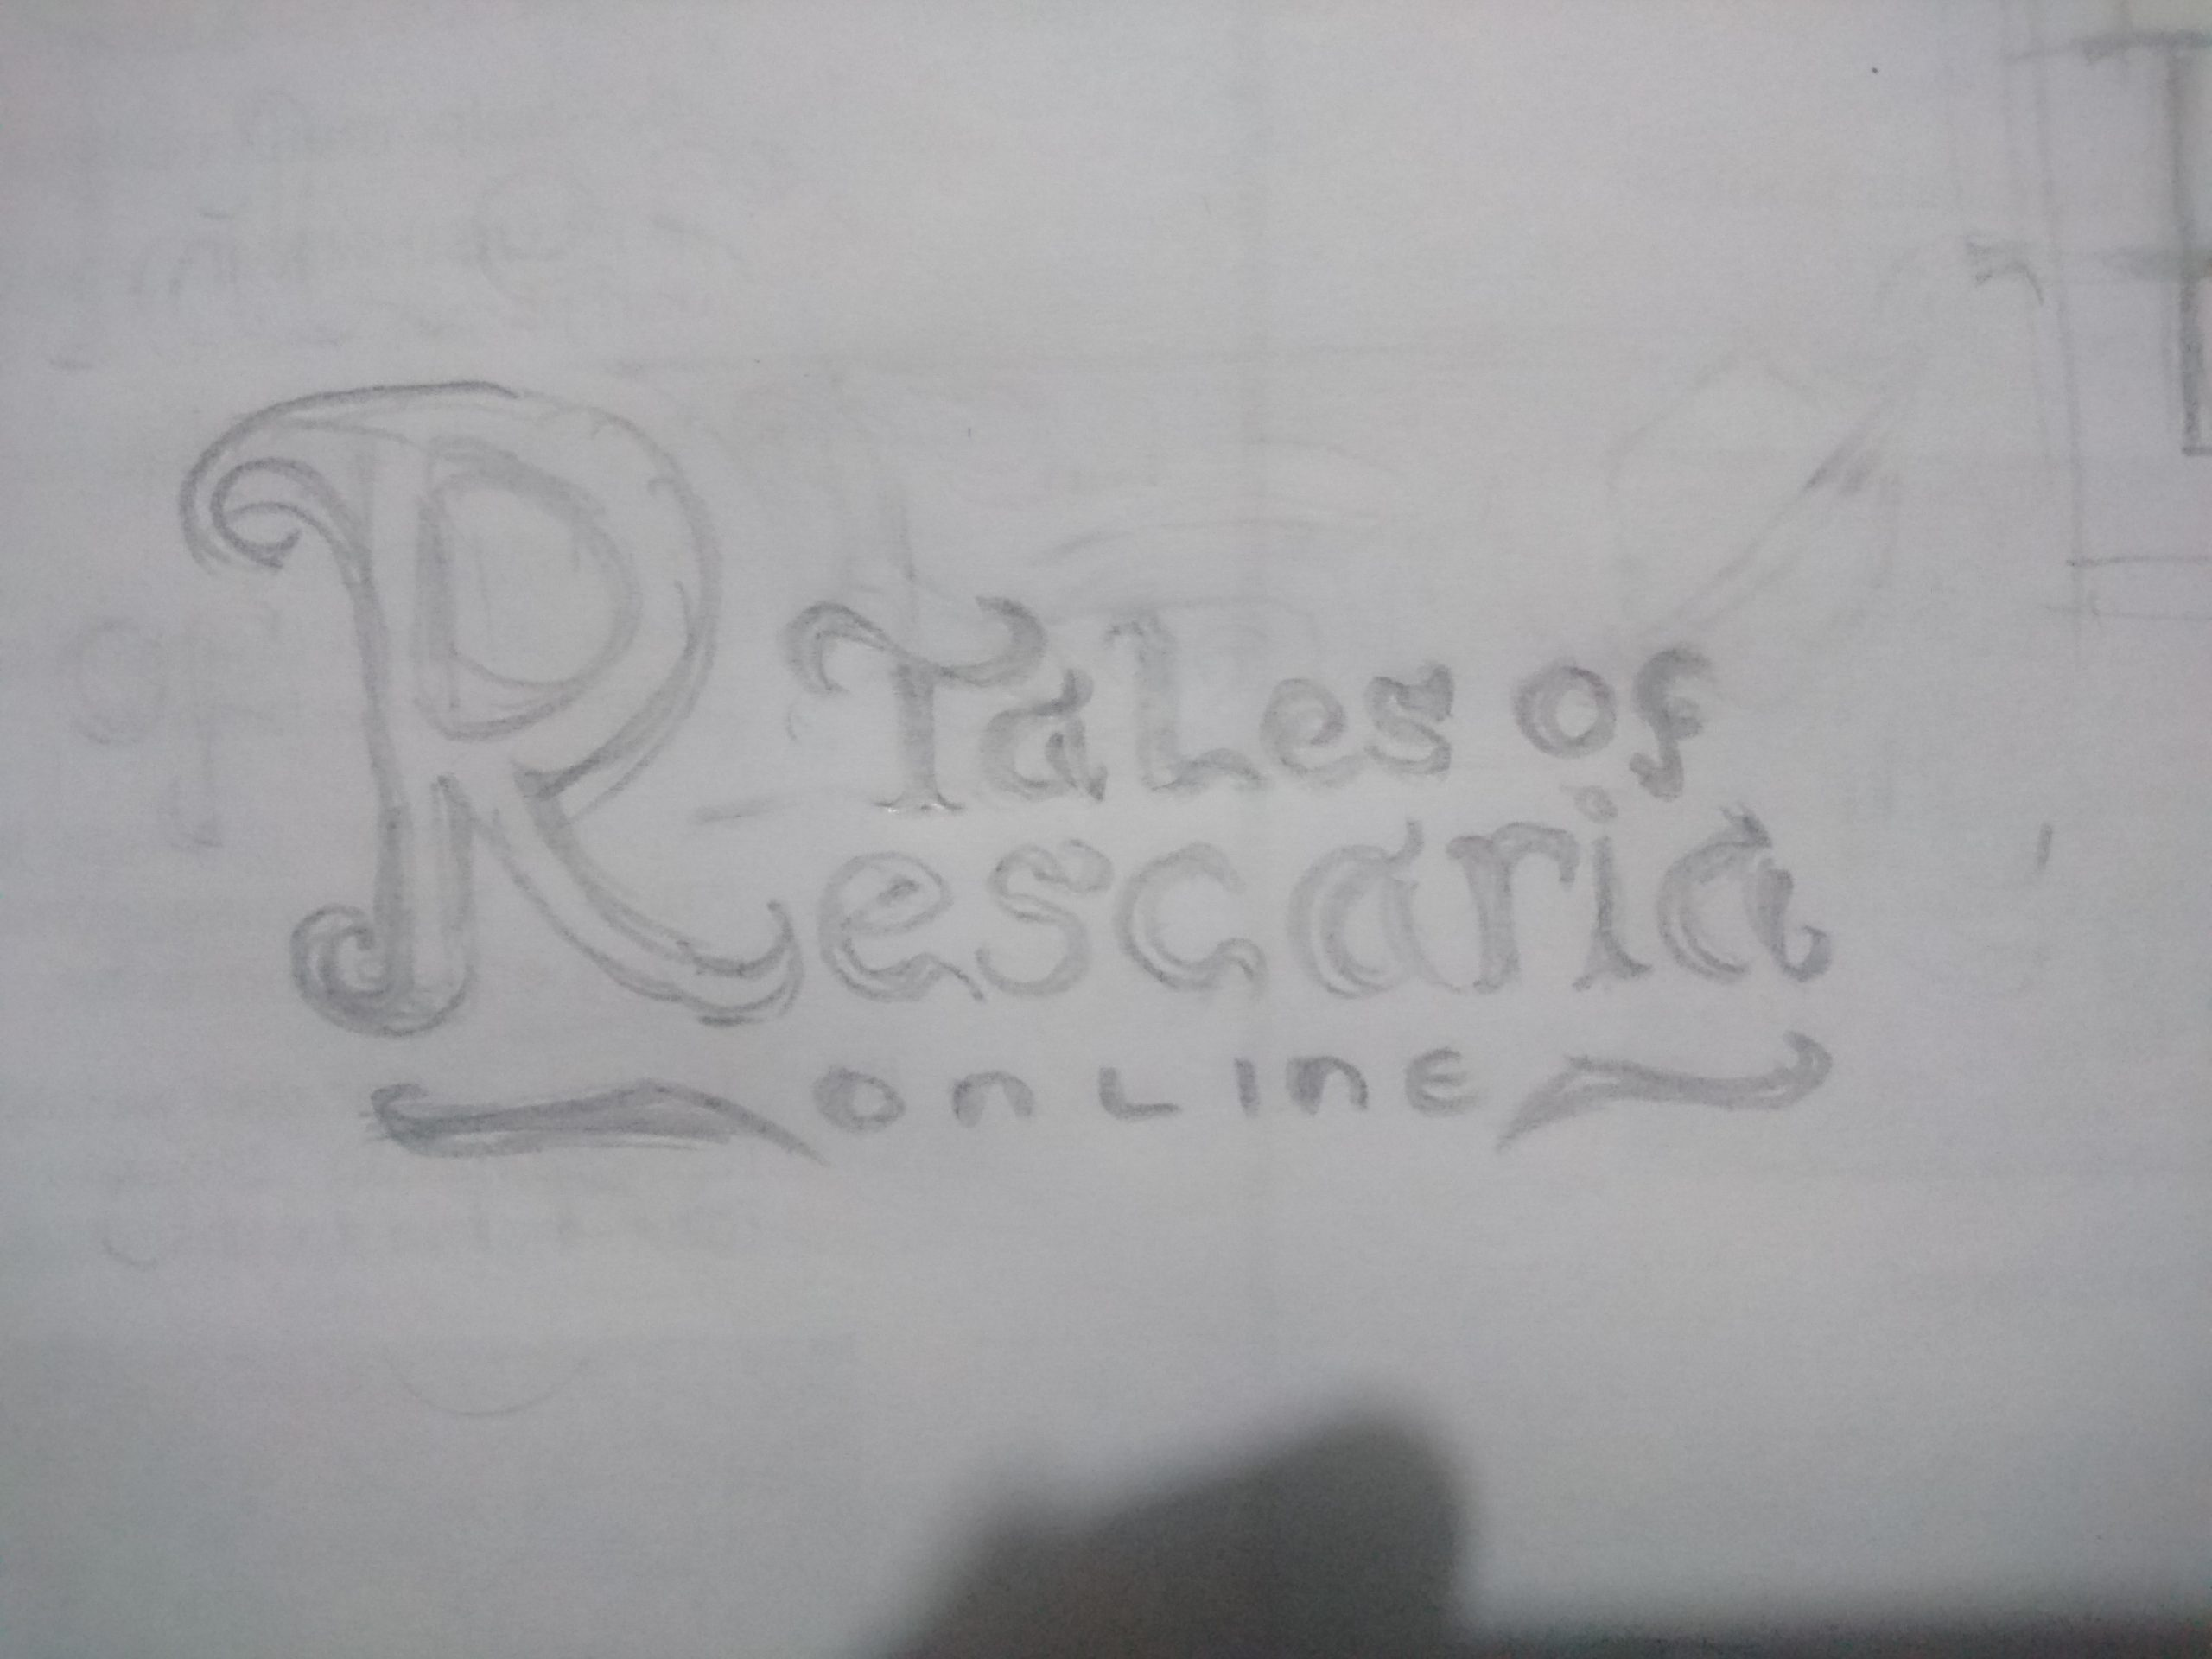 First Sketches of the Logo